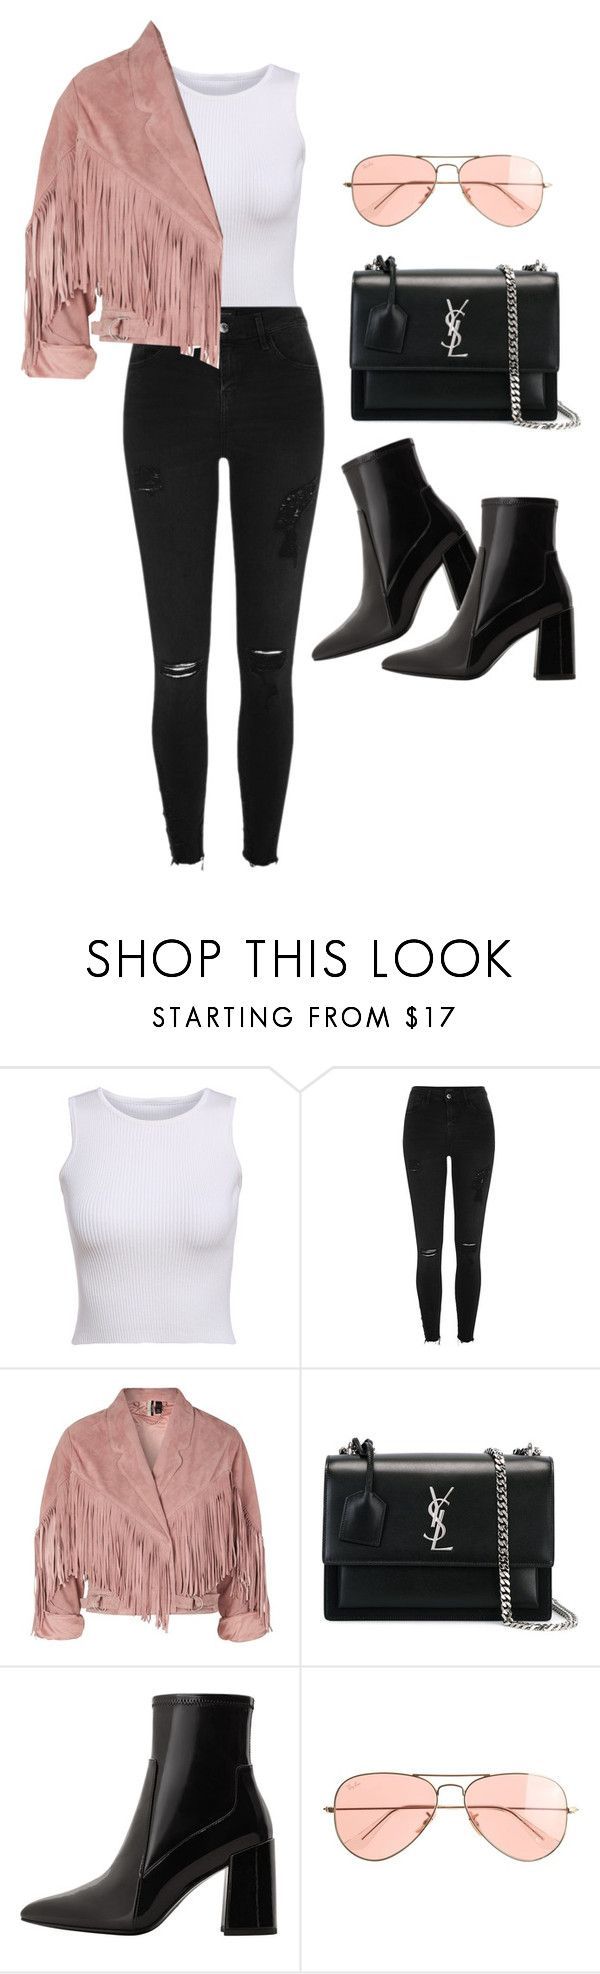 """""""Untitled #5066"""" by lilaclynn ❤ liked on Polyvore featuring River Island, Topshop, Yves Saint Laurent, MANGO and J.Crew"""